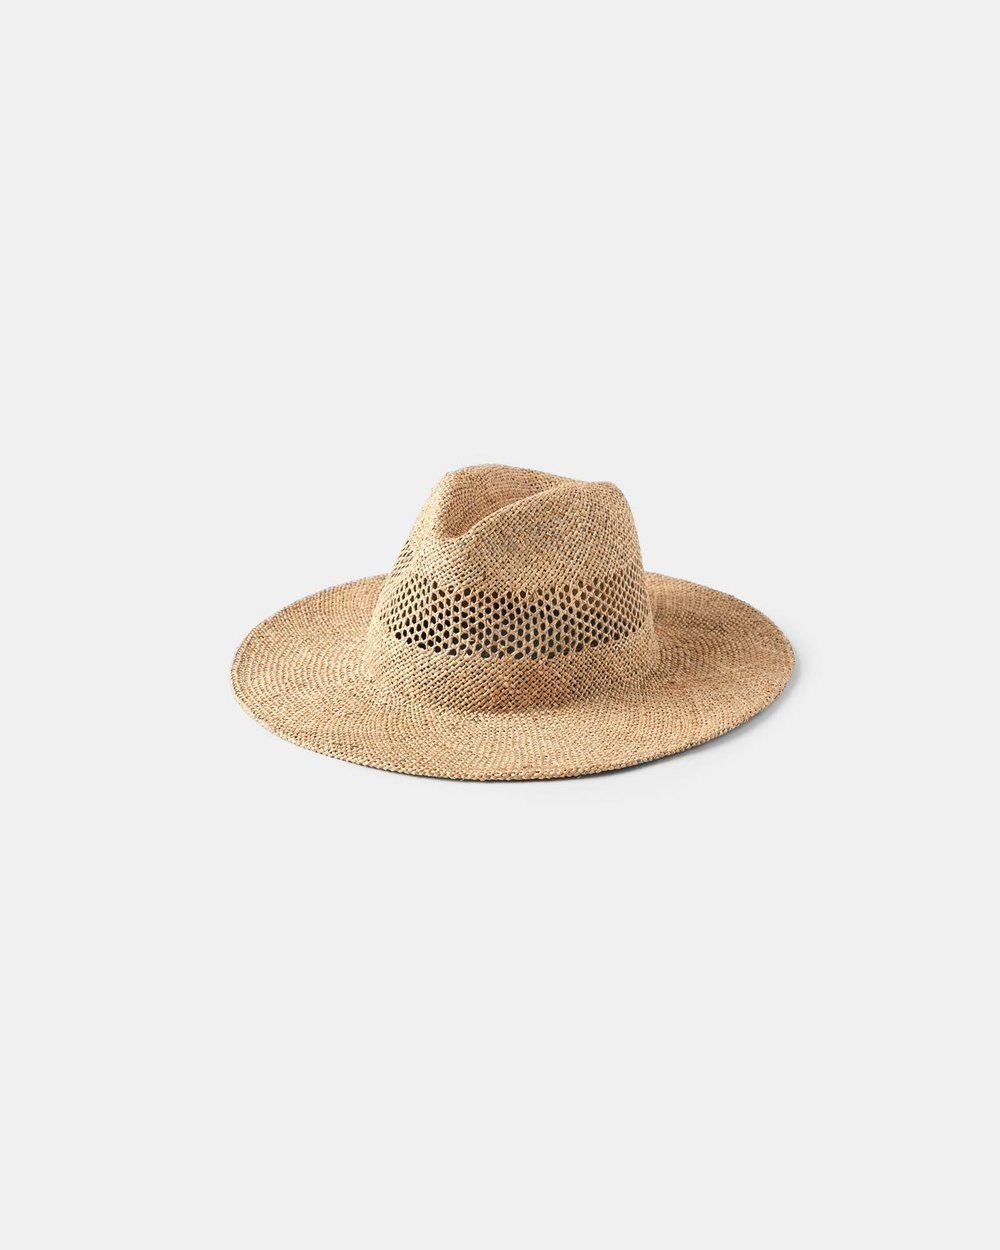 will-and-bear-remy-straw-hat-1.jpg